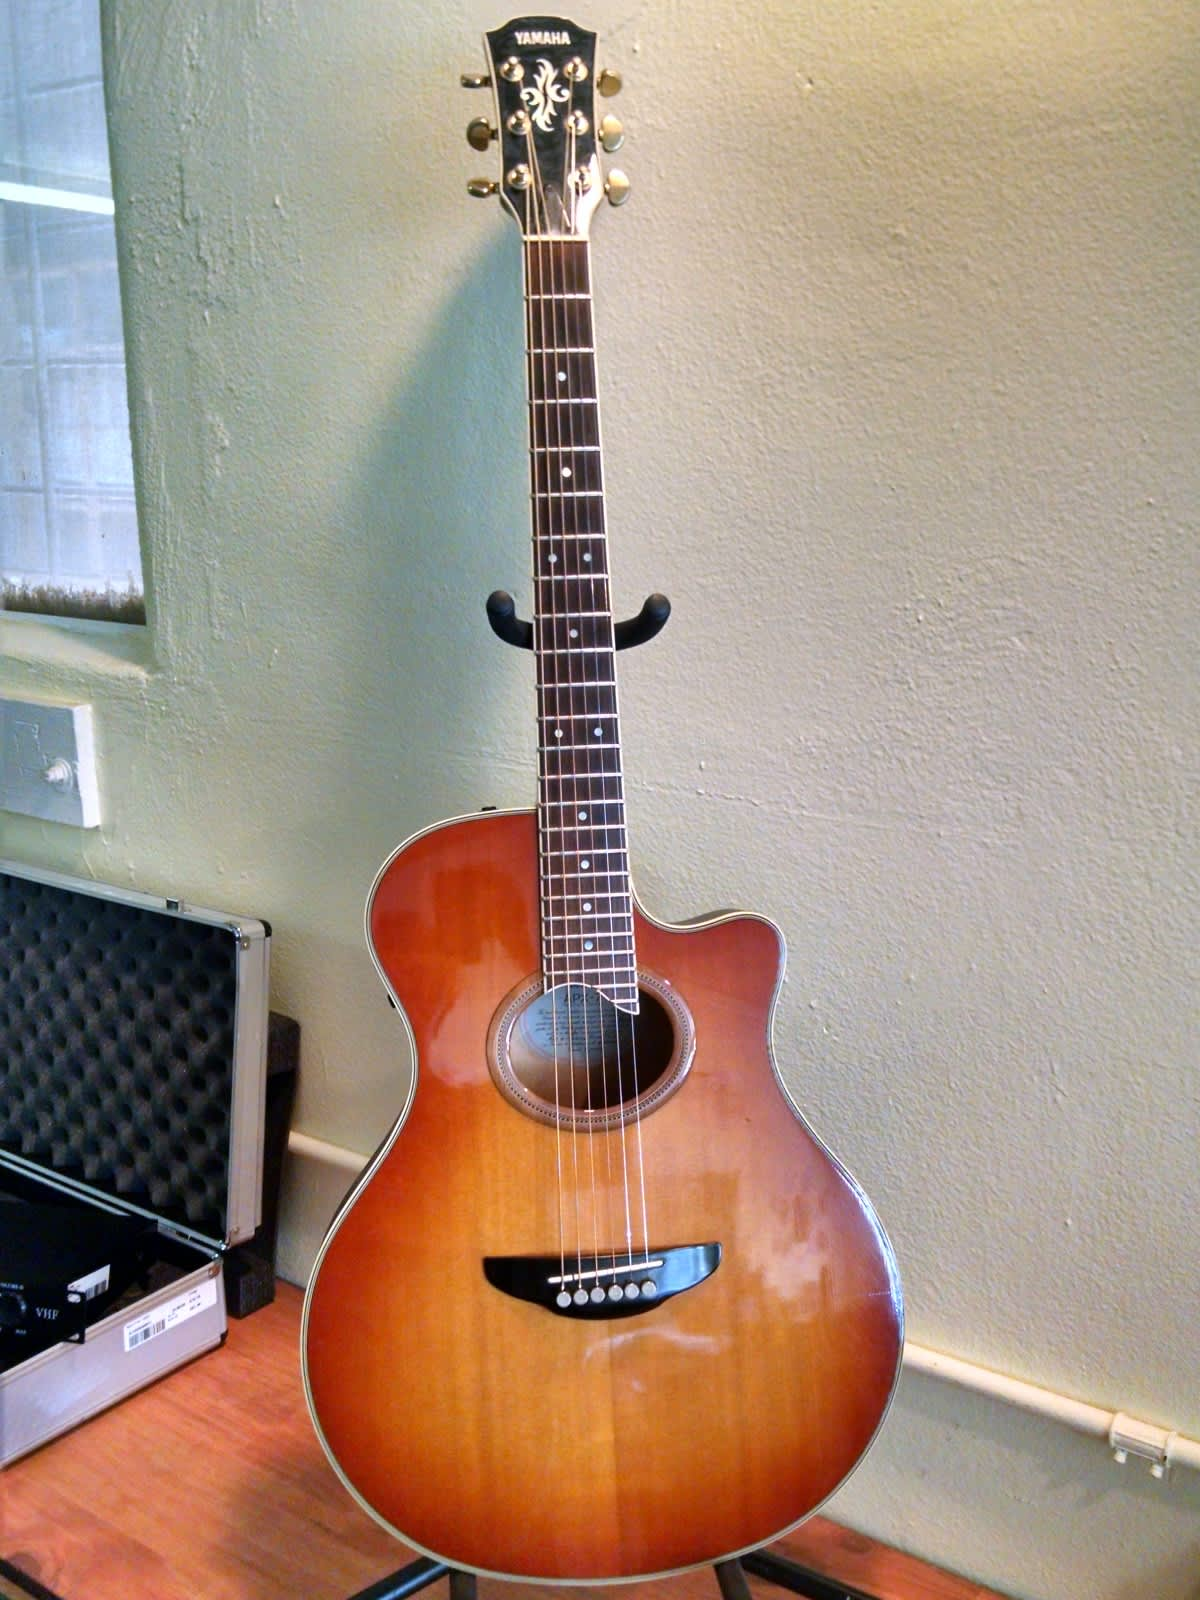 Yamaha acoustic electric guitar model apx 7 reverb for Apx guitar yamaha